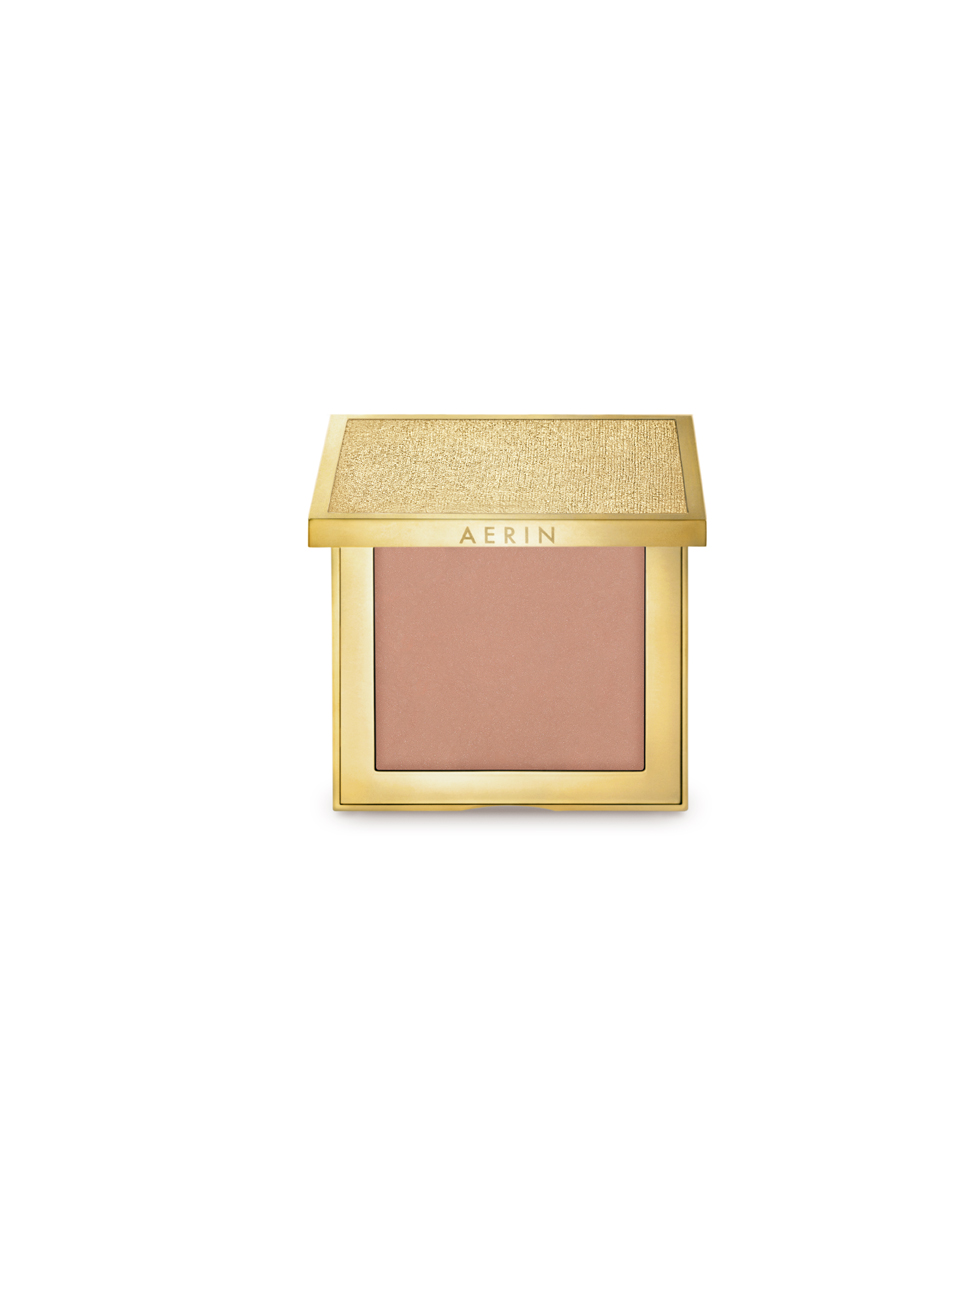 AERIN Multi Color for Lips and Cheeks in Natural